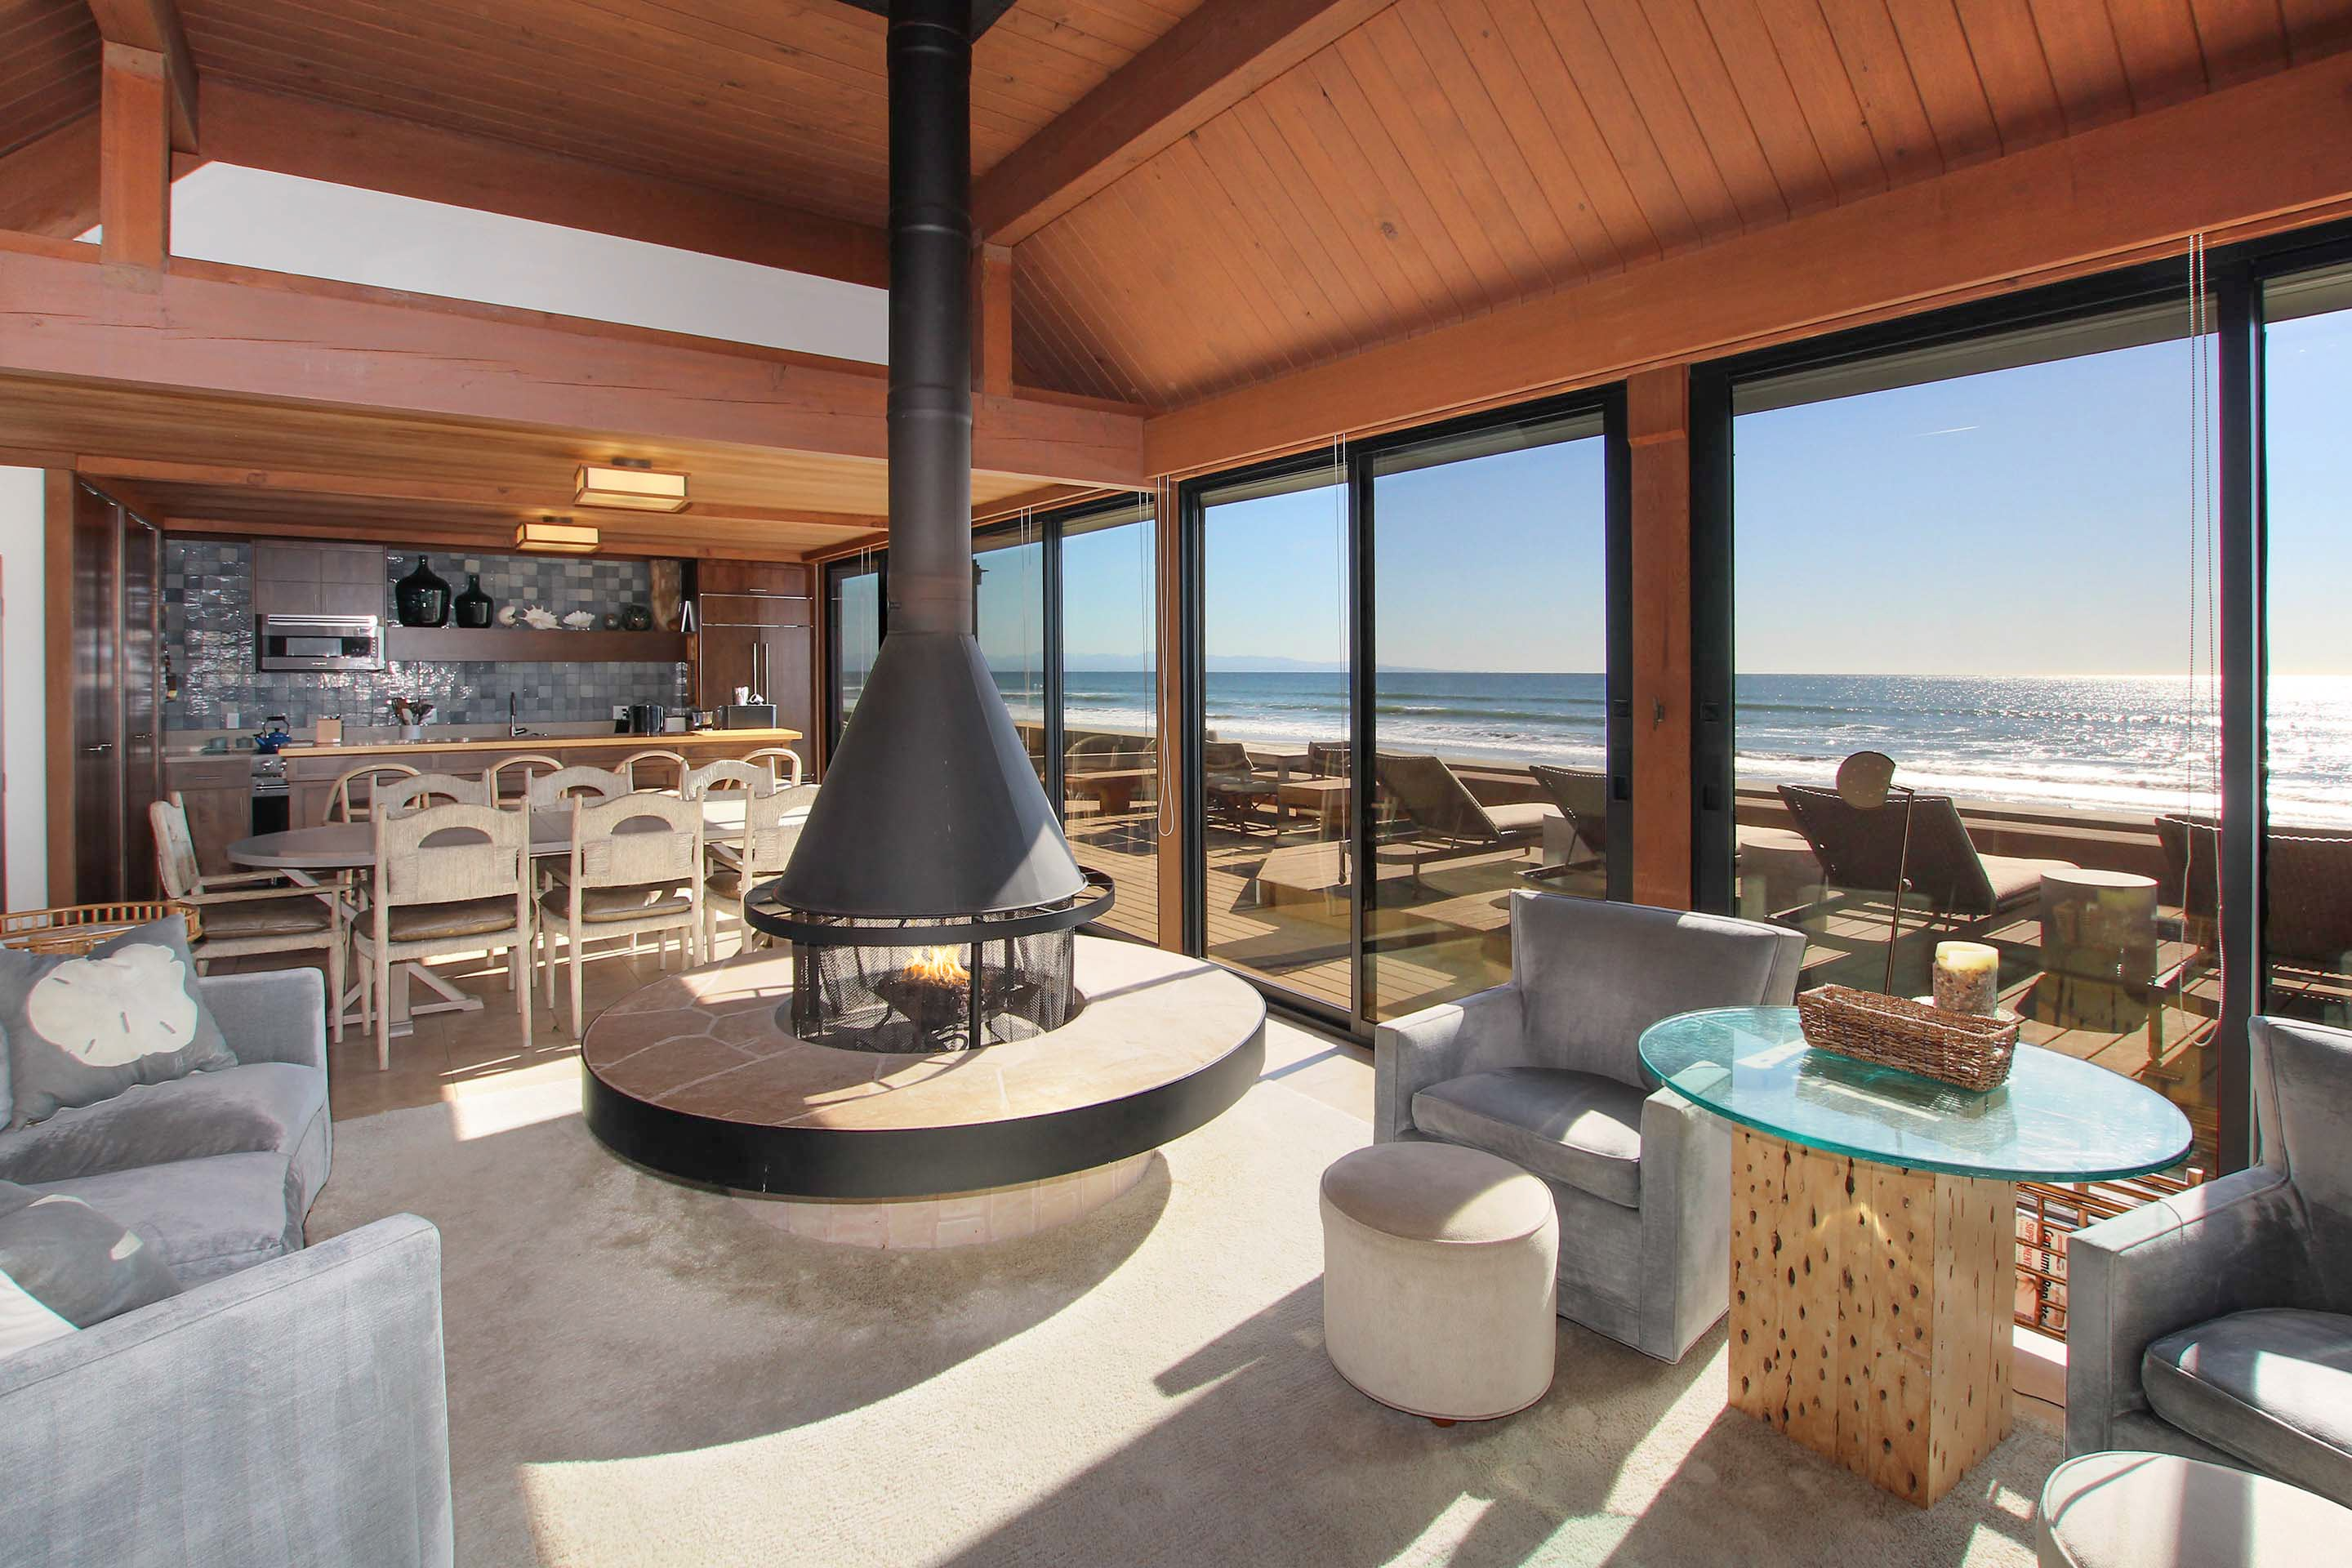 Unwind with a a gas fireplace and sweeping ocean views in the open living, dining and kitchen area.